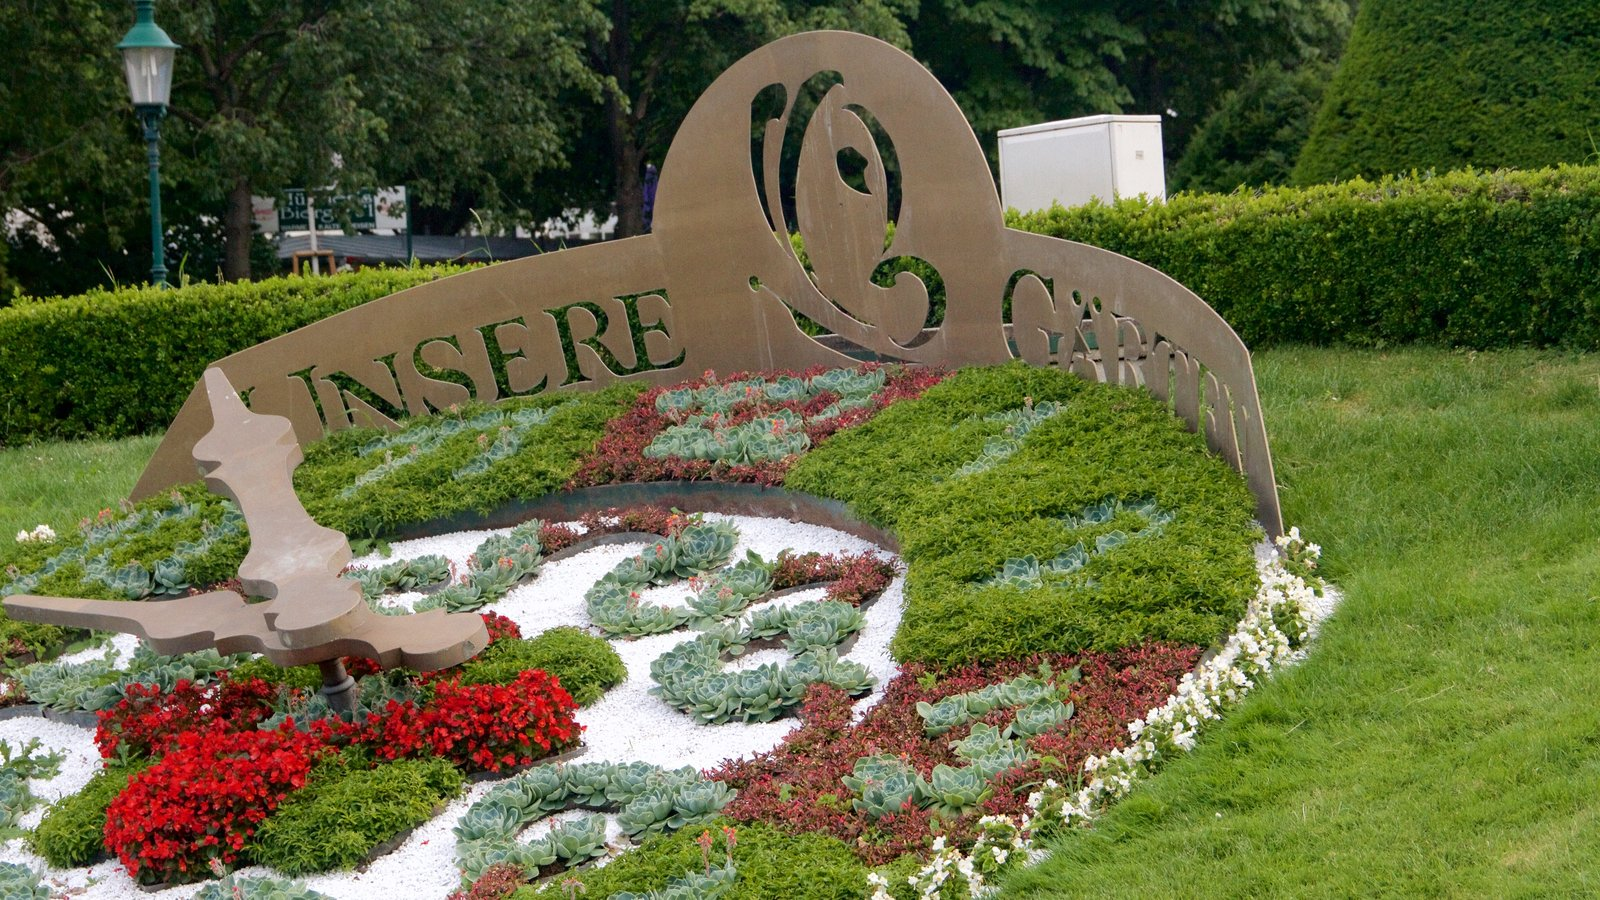 Viennese City Park Featuring A Garden, Flowers And Signage